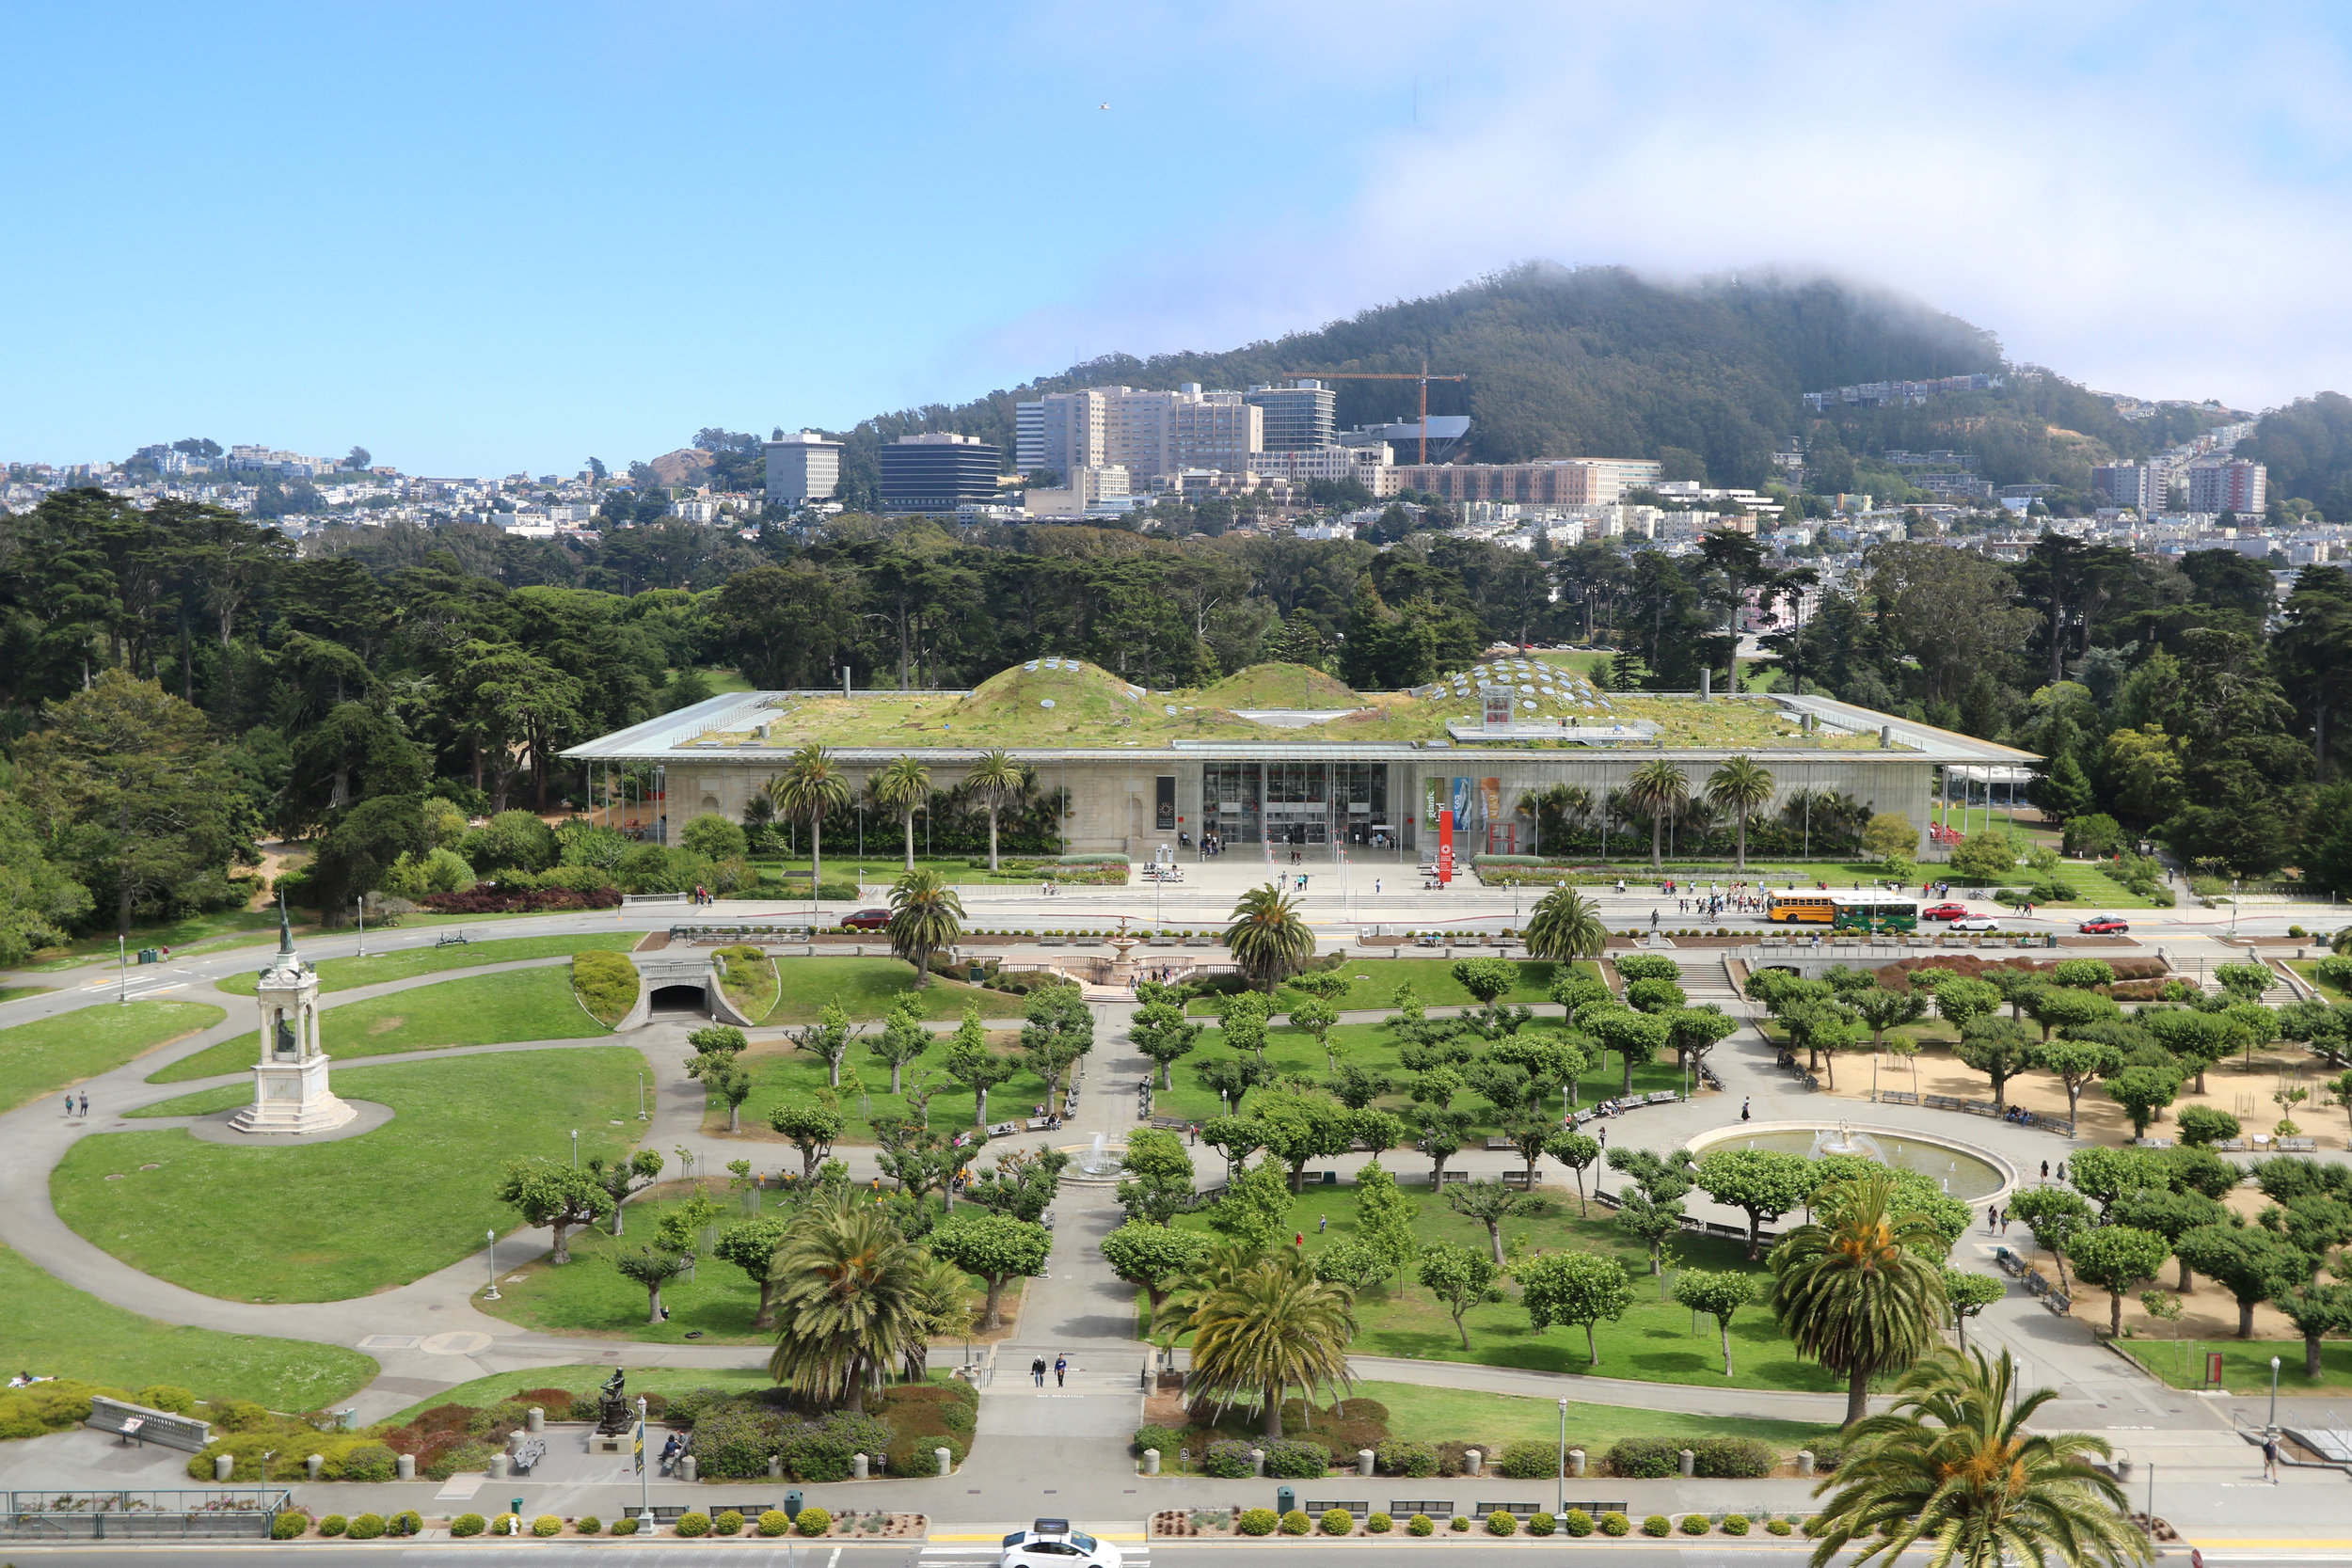 Featured: California Academy of Sciences